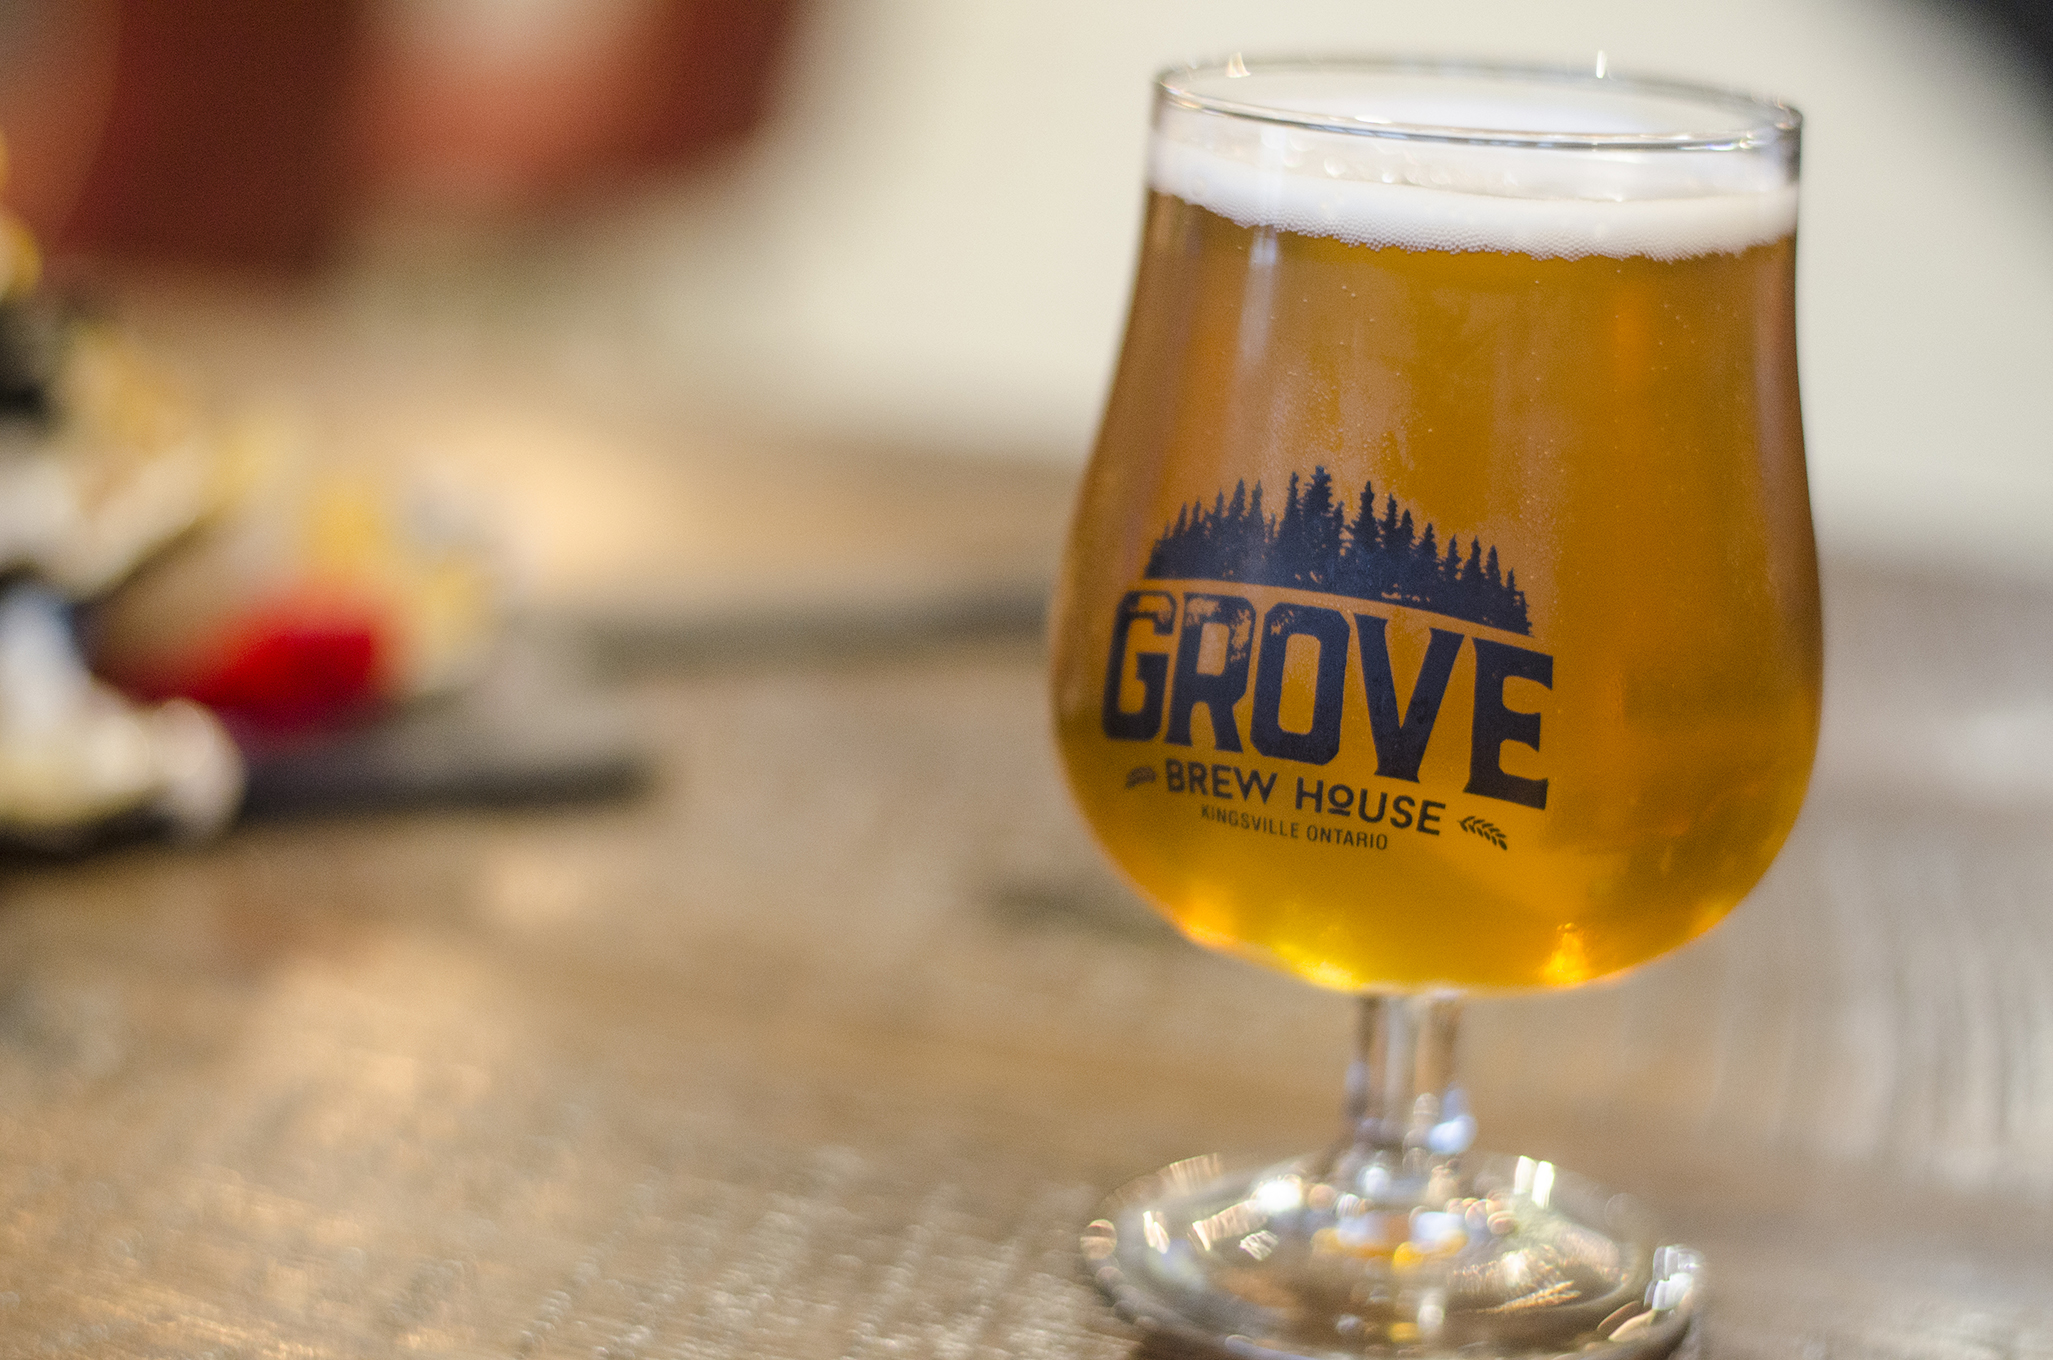 Enjoy some award winning craft beers at The Grove Brew House in Kingsville, Ontario.